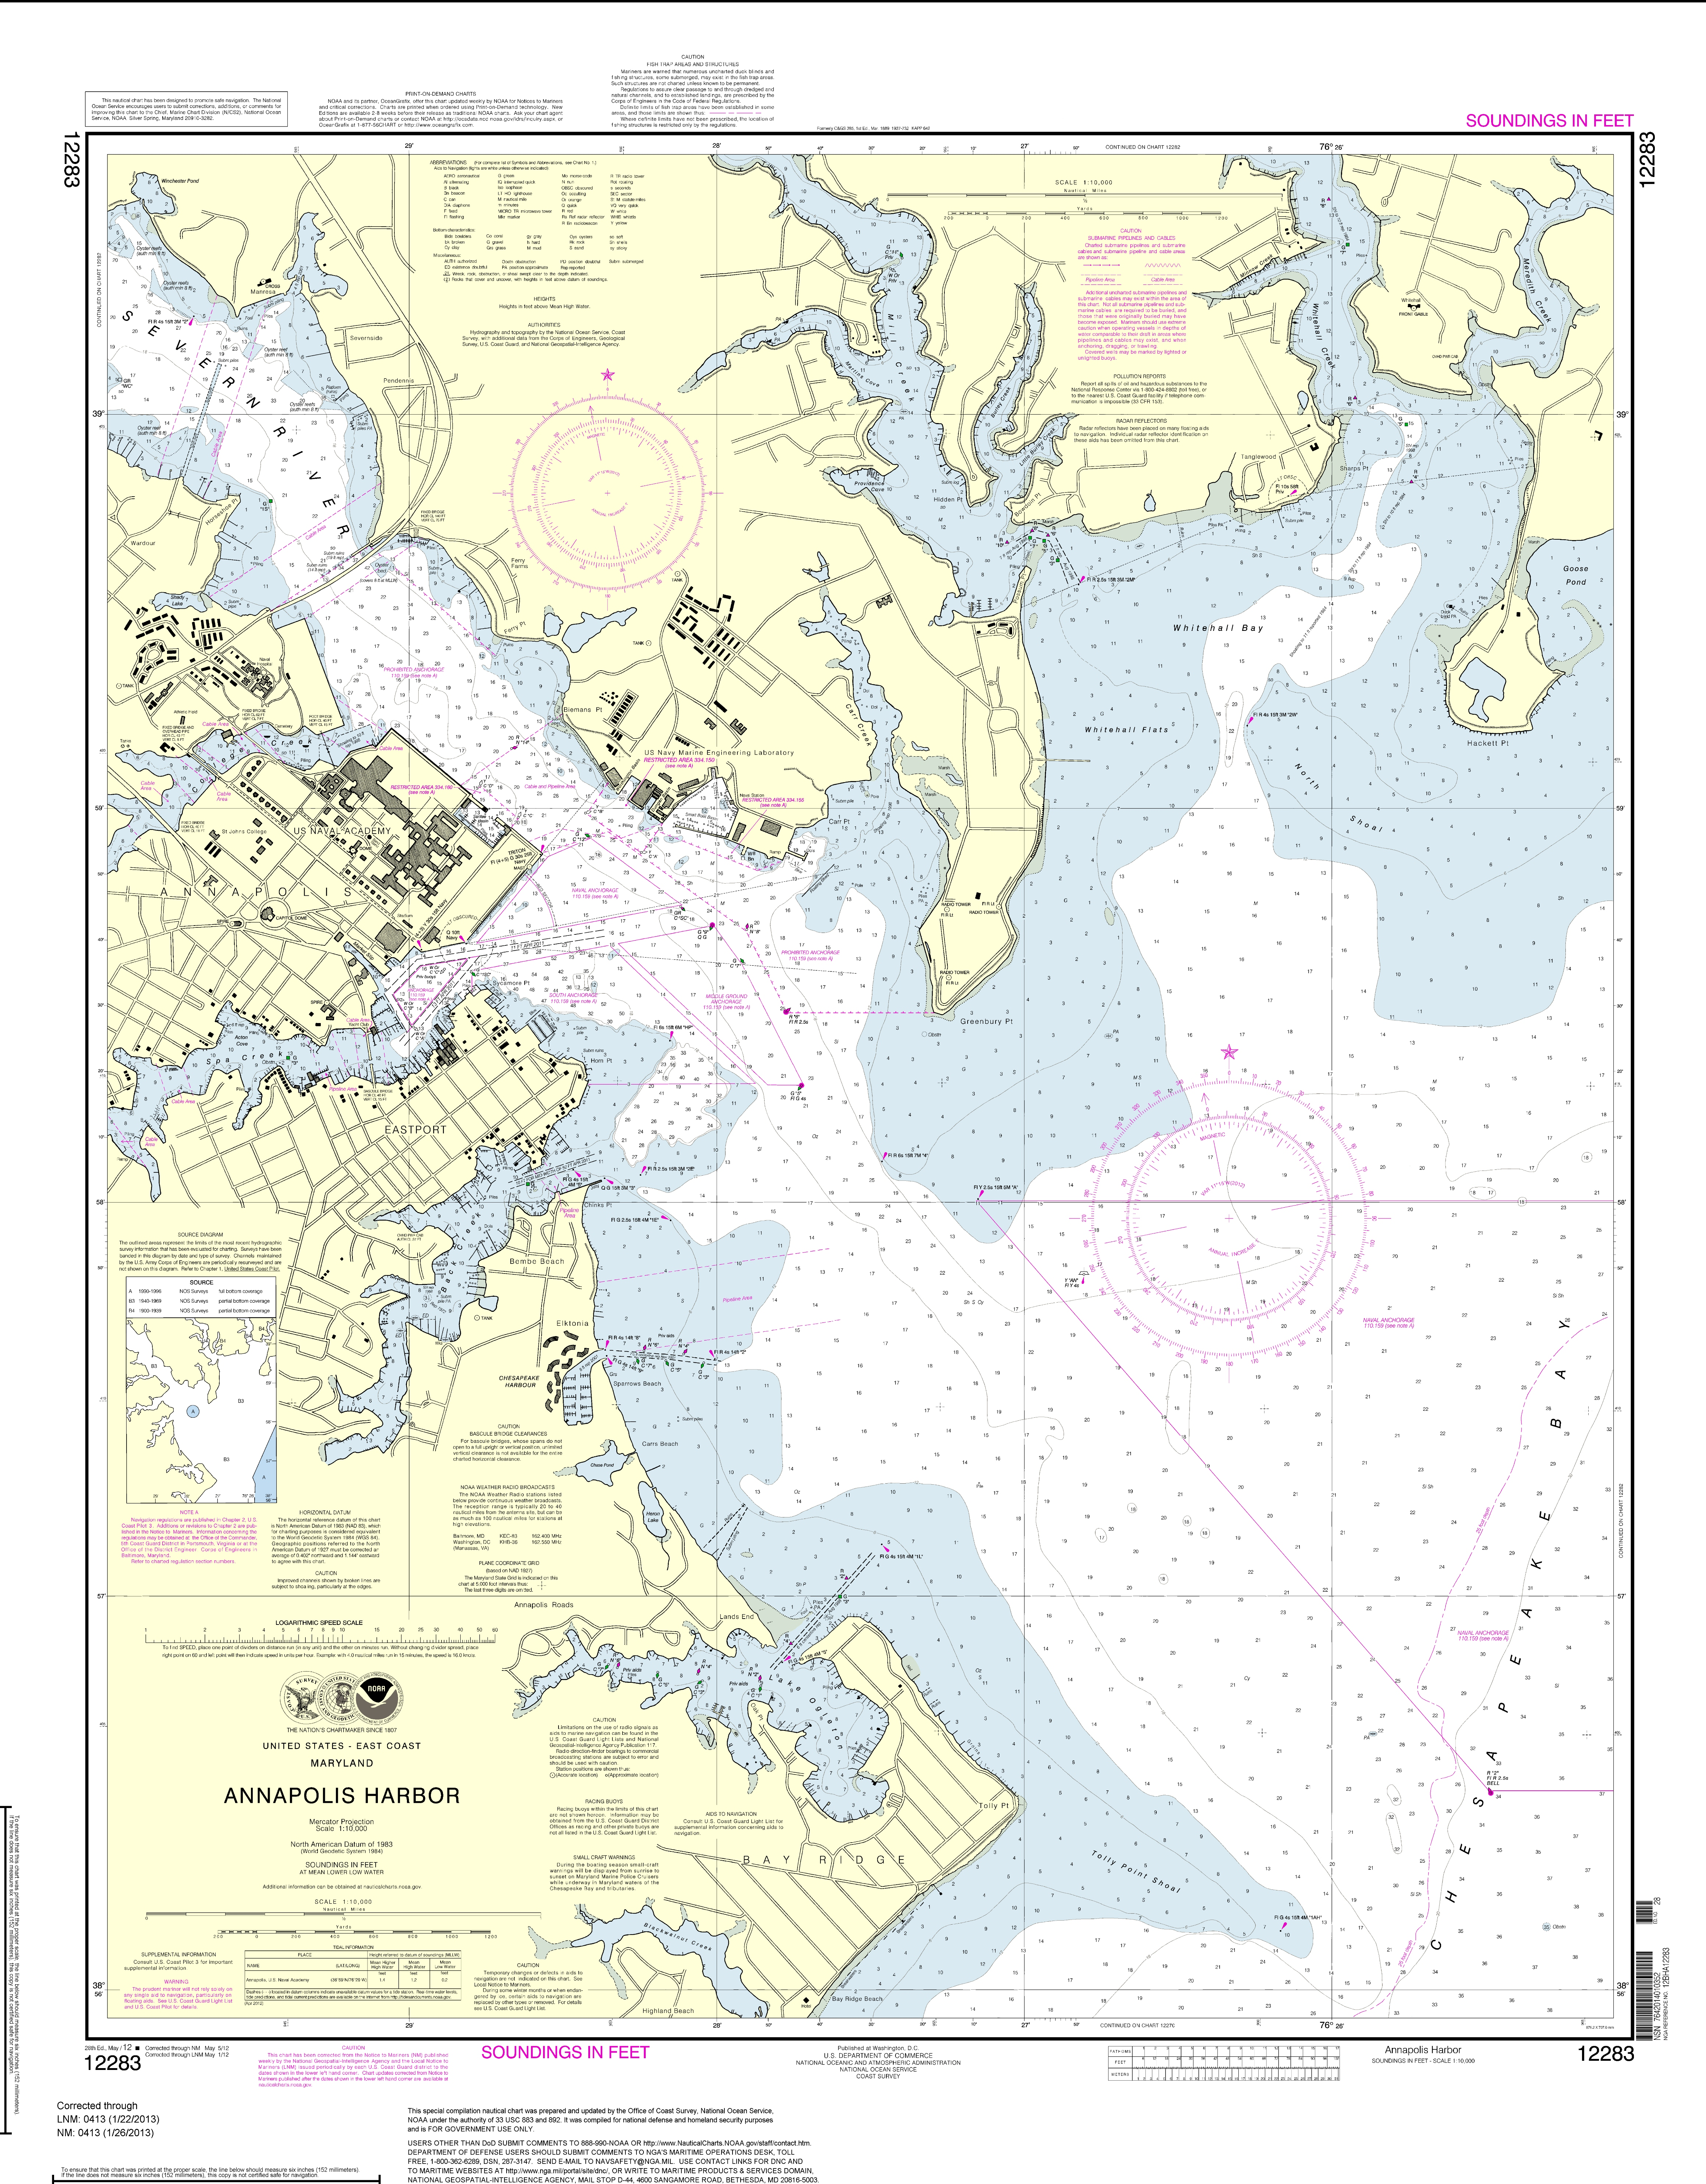 Noaa Nautical Charts Now Available As Free Pdfs